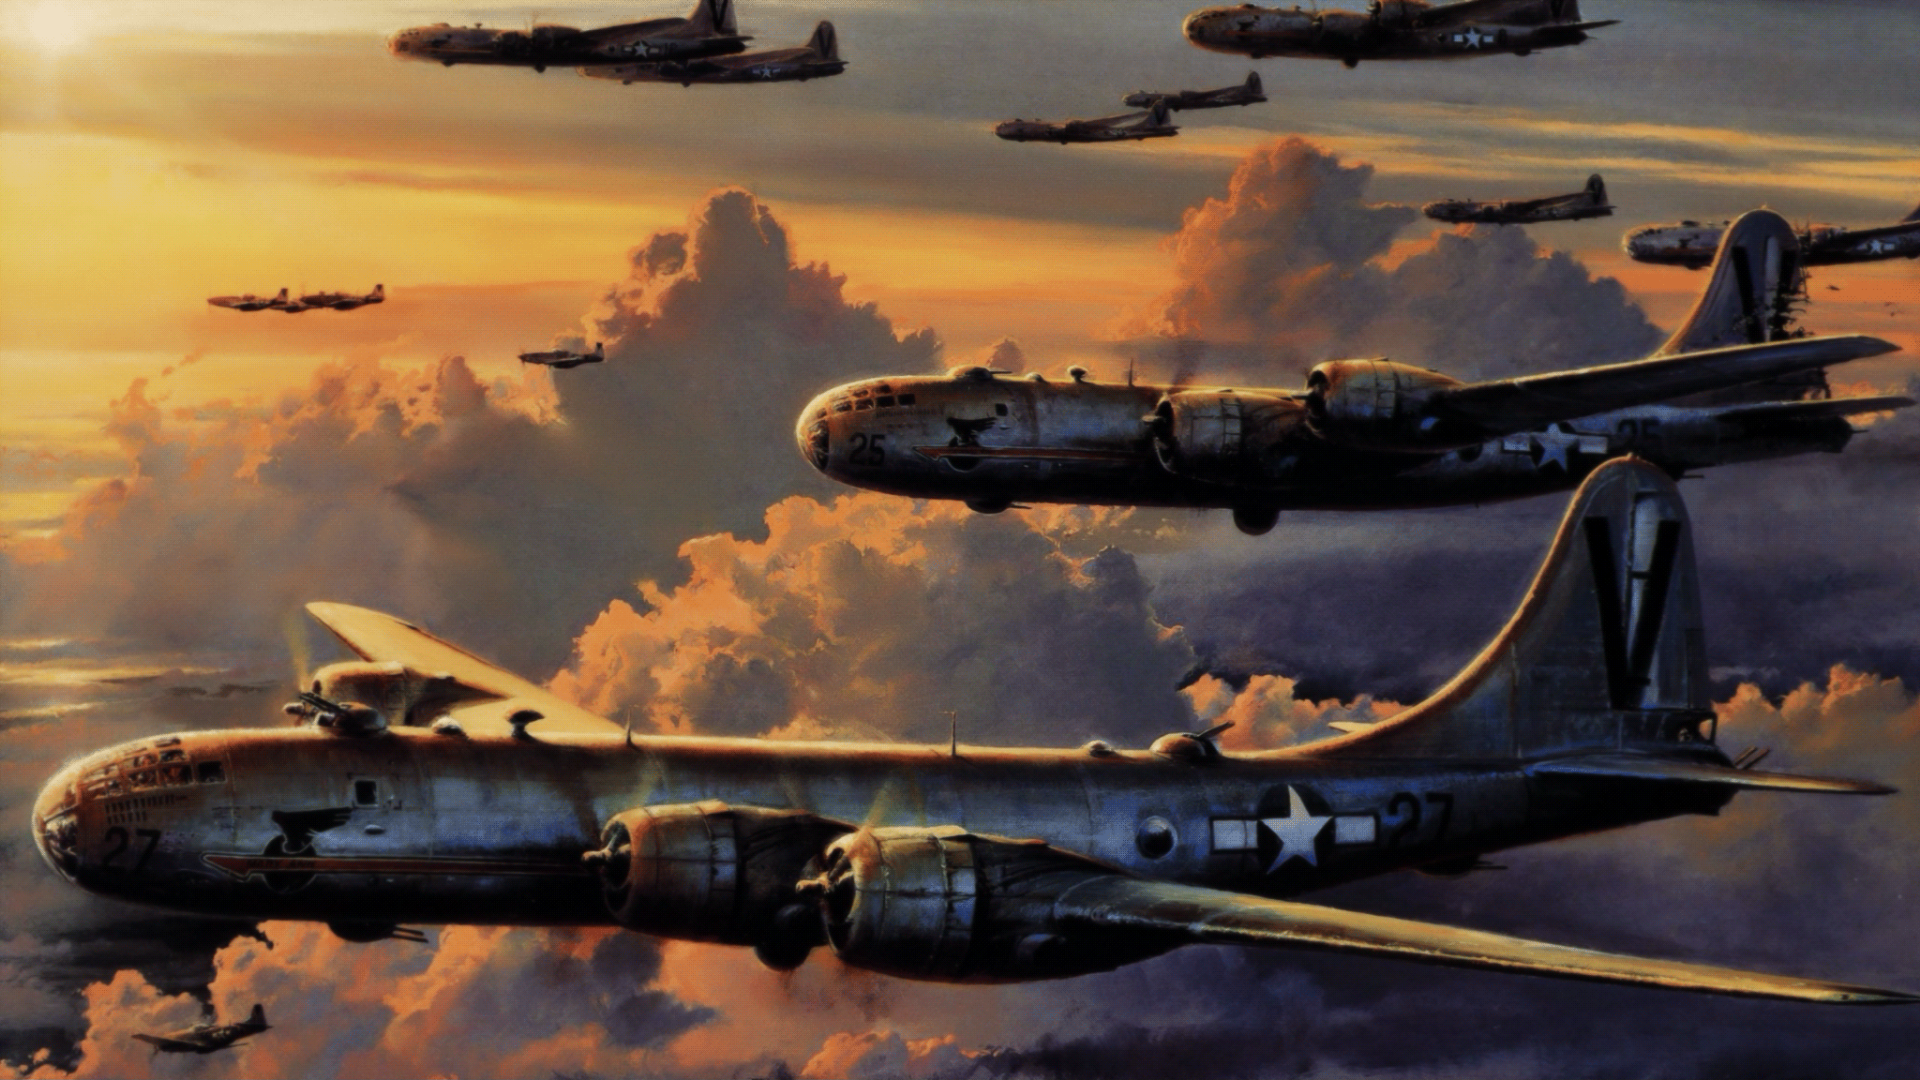 B-29 Superfortress | Turtledove | FANDOM powered by Wikia